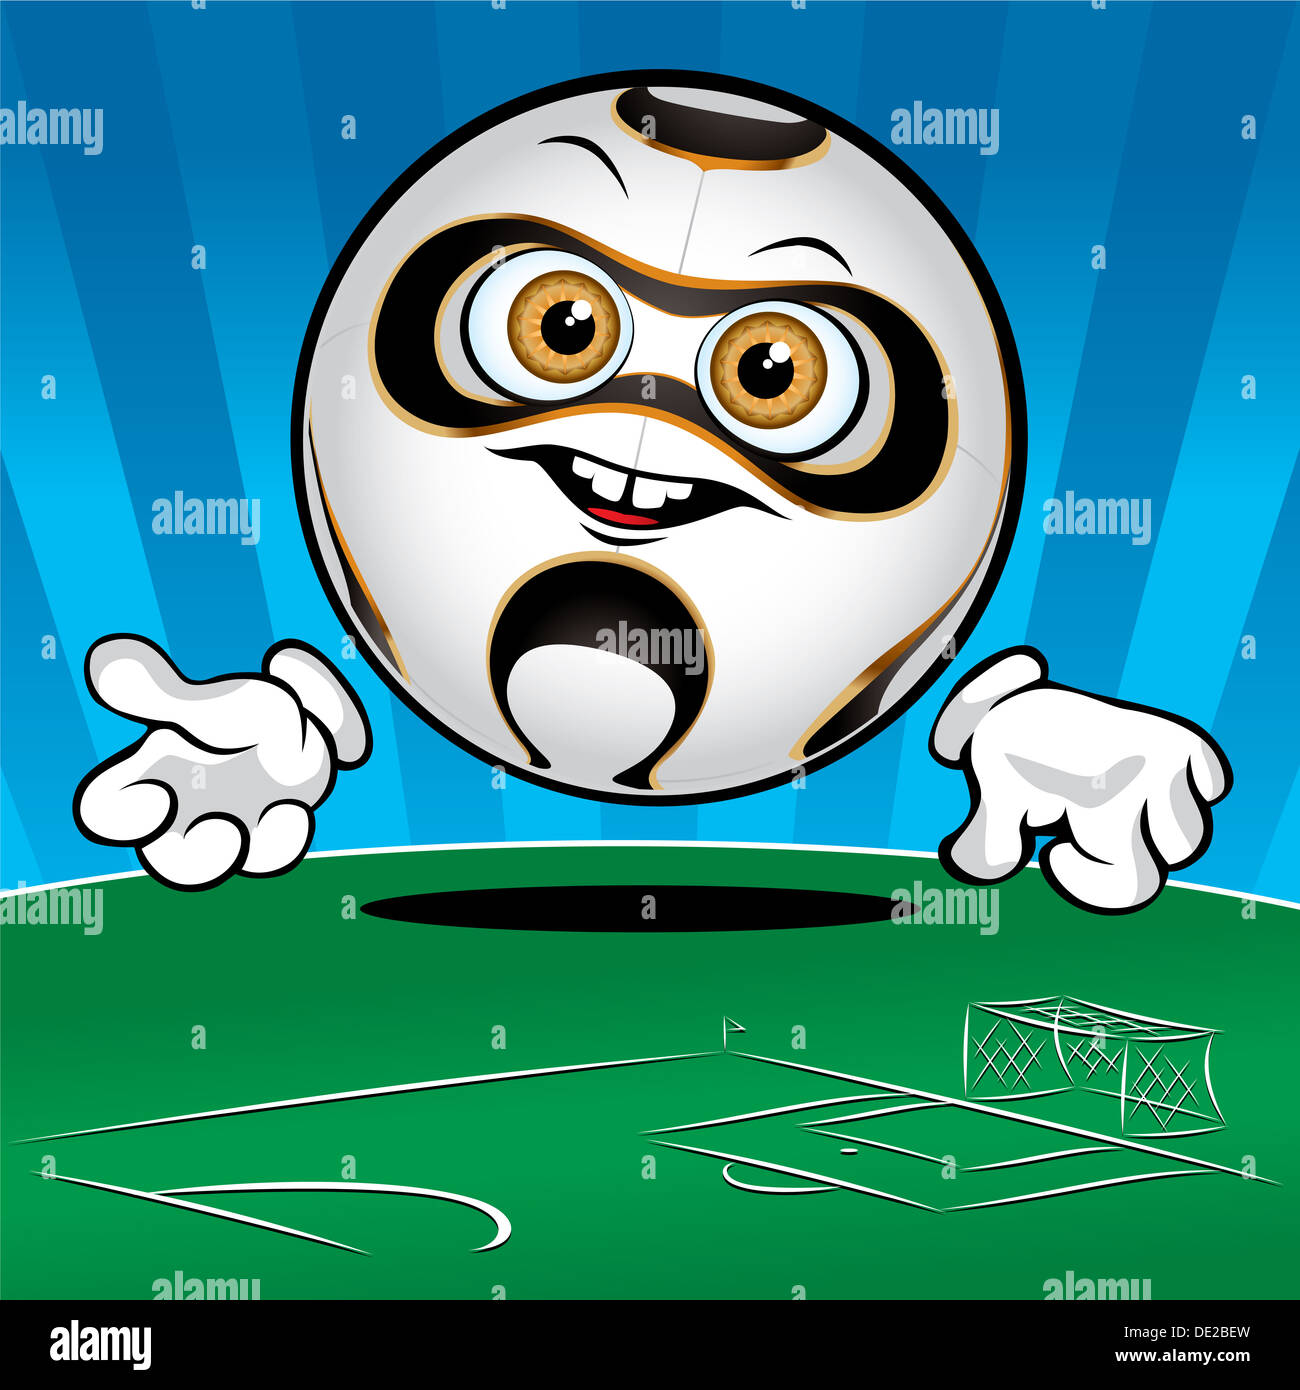 Funny smiling soccer ball on the bluegreen background - Stock Image